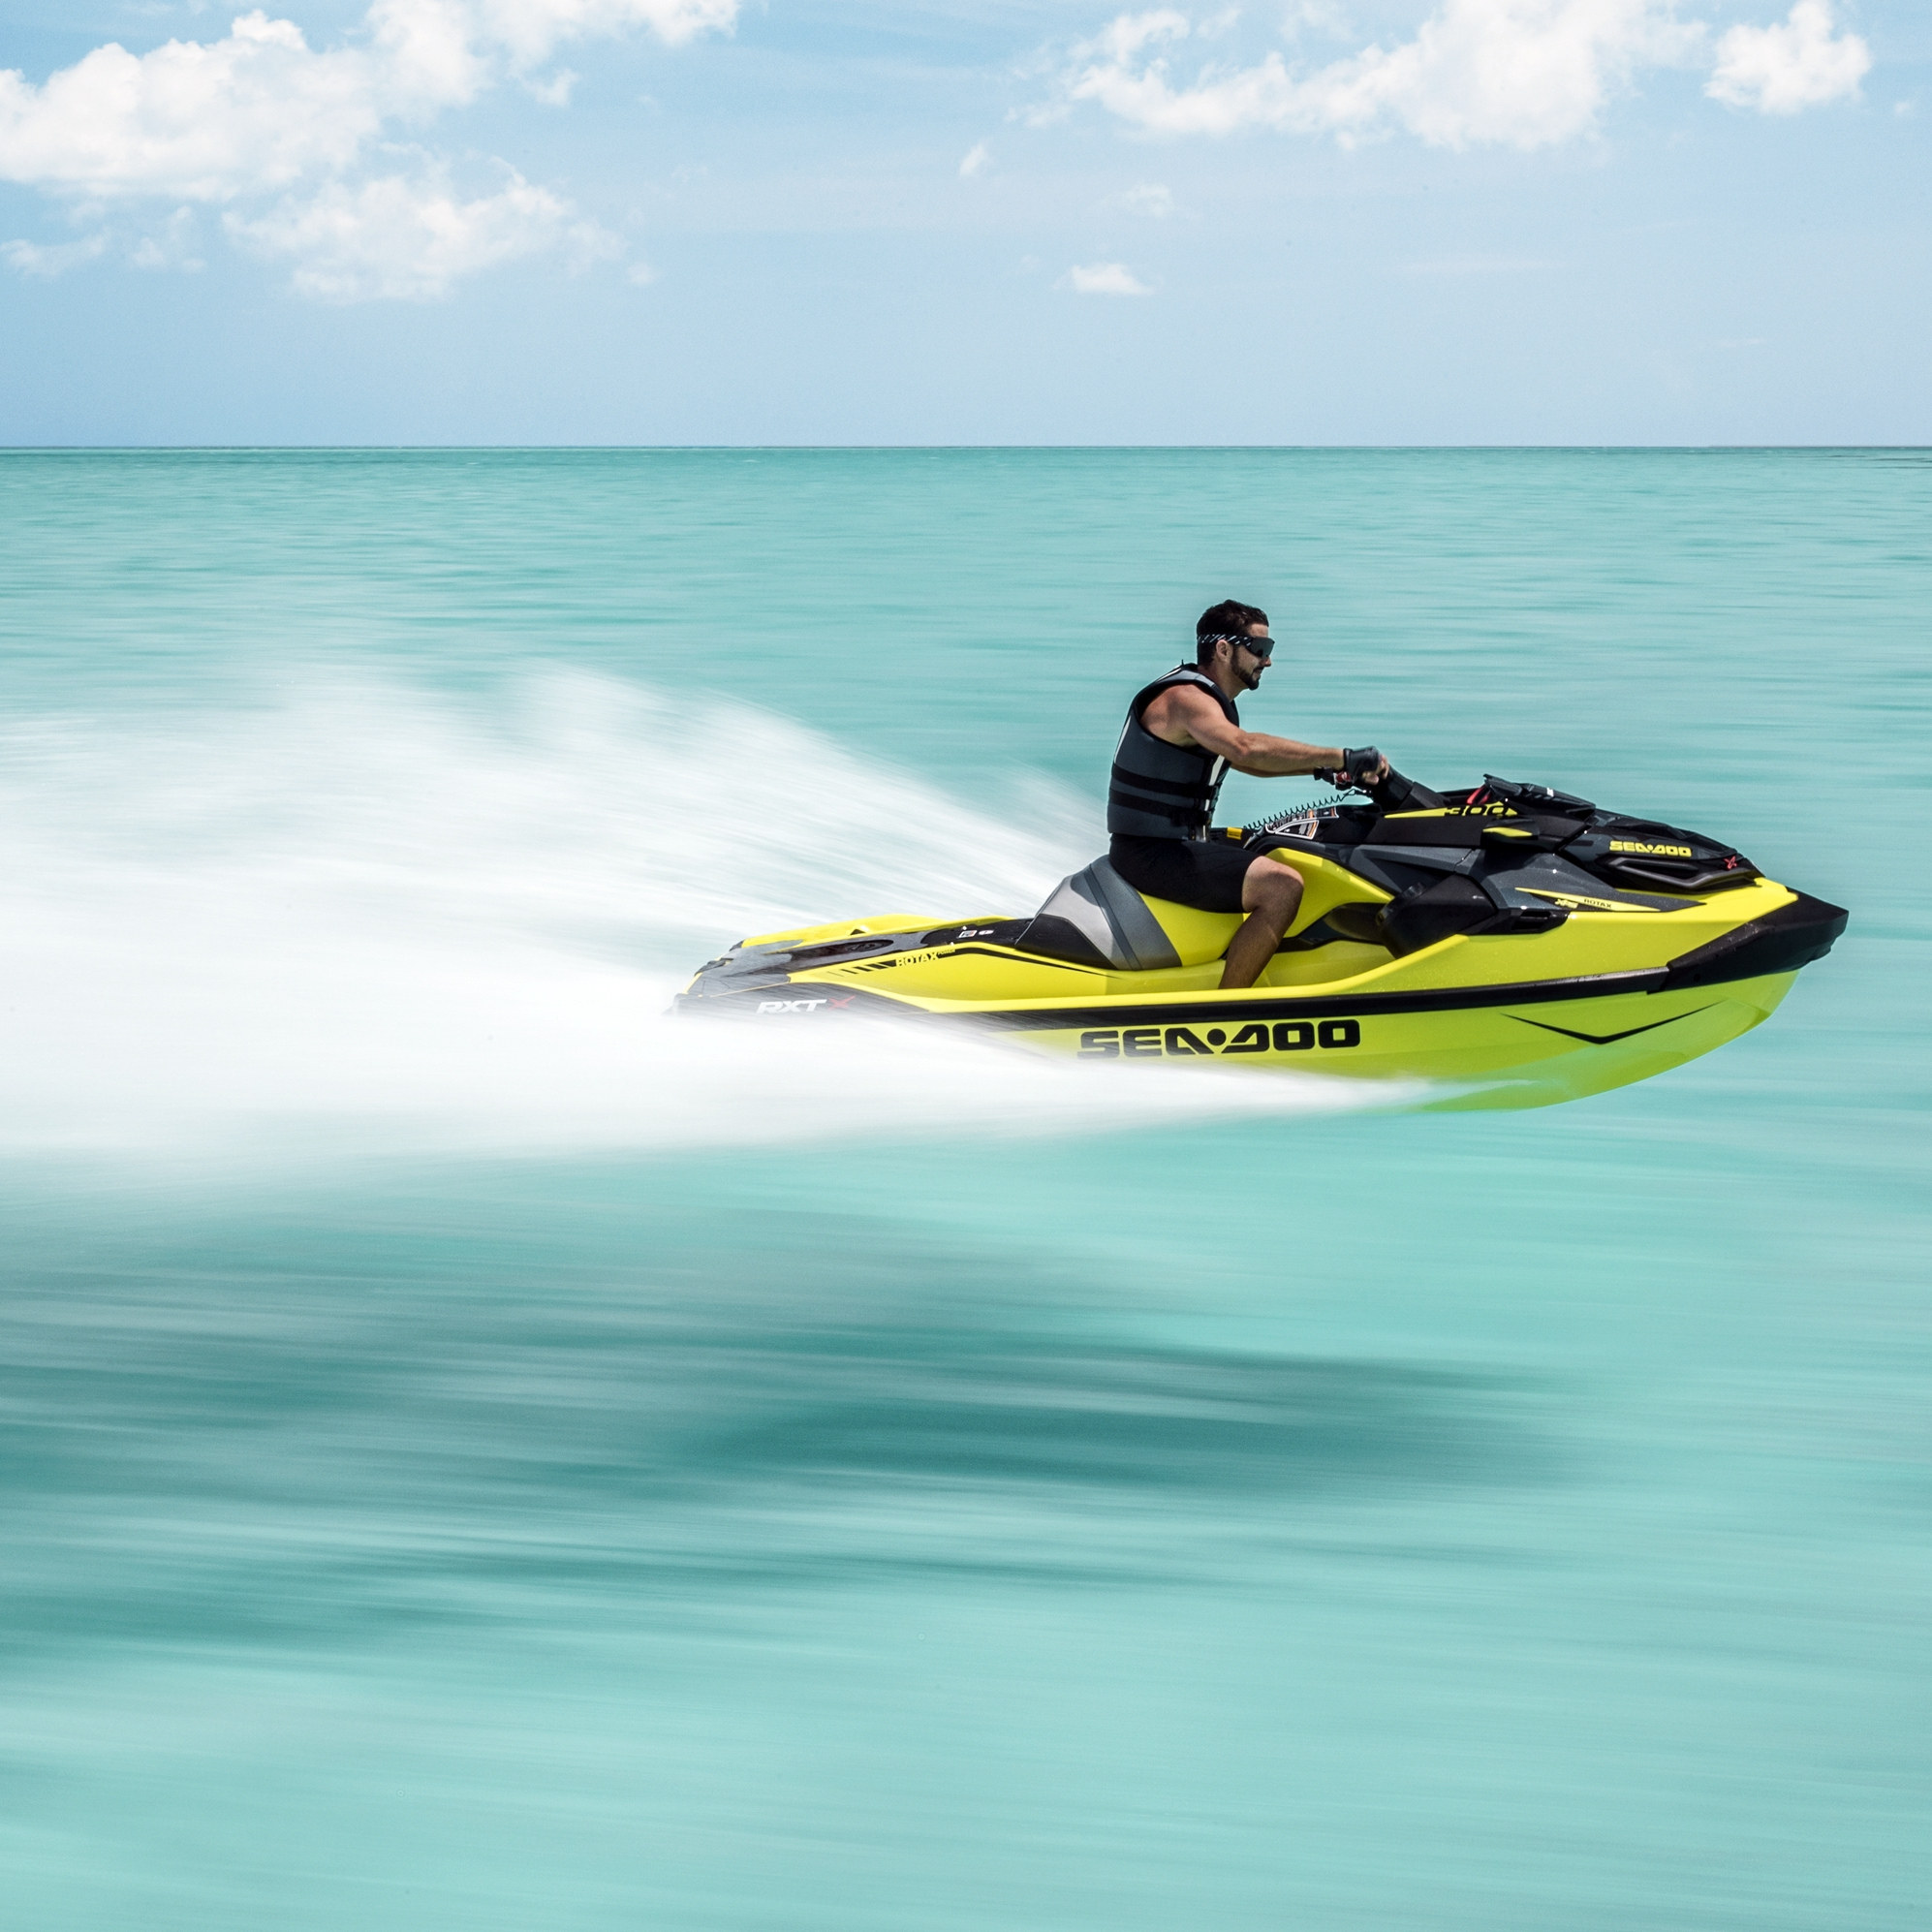 2018 Sea-Doo RXT-X in Neon Yellow and Lava Grey.